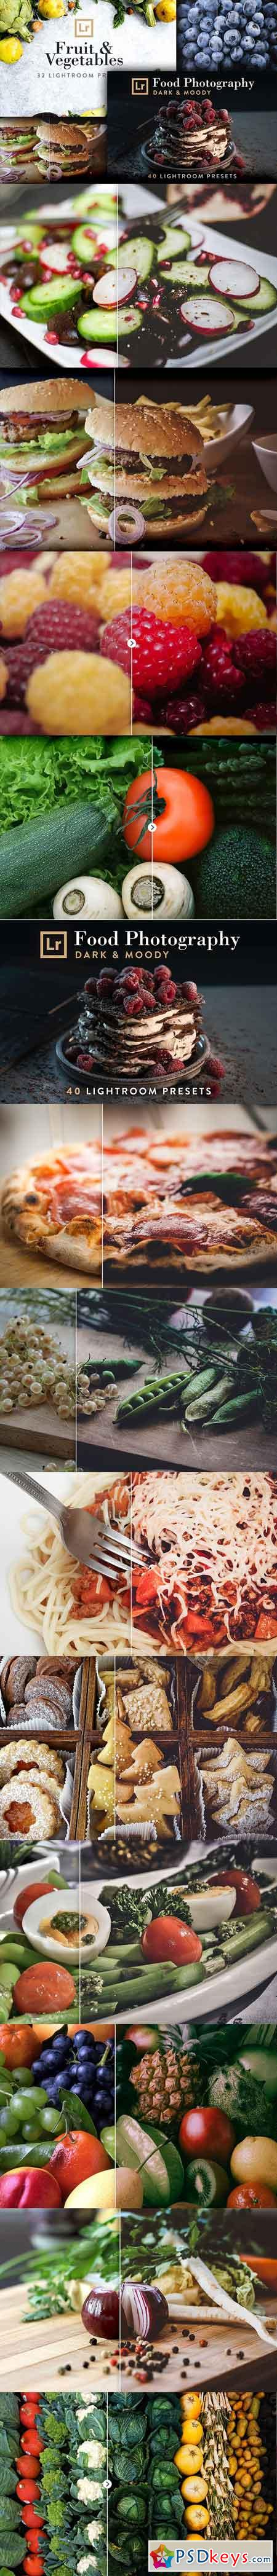 Food Bundle - 72 Lightroom Presets 2645102